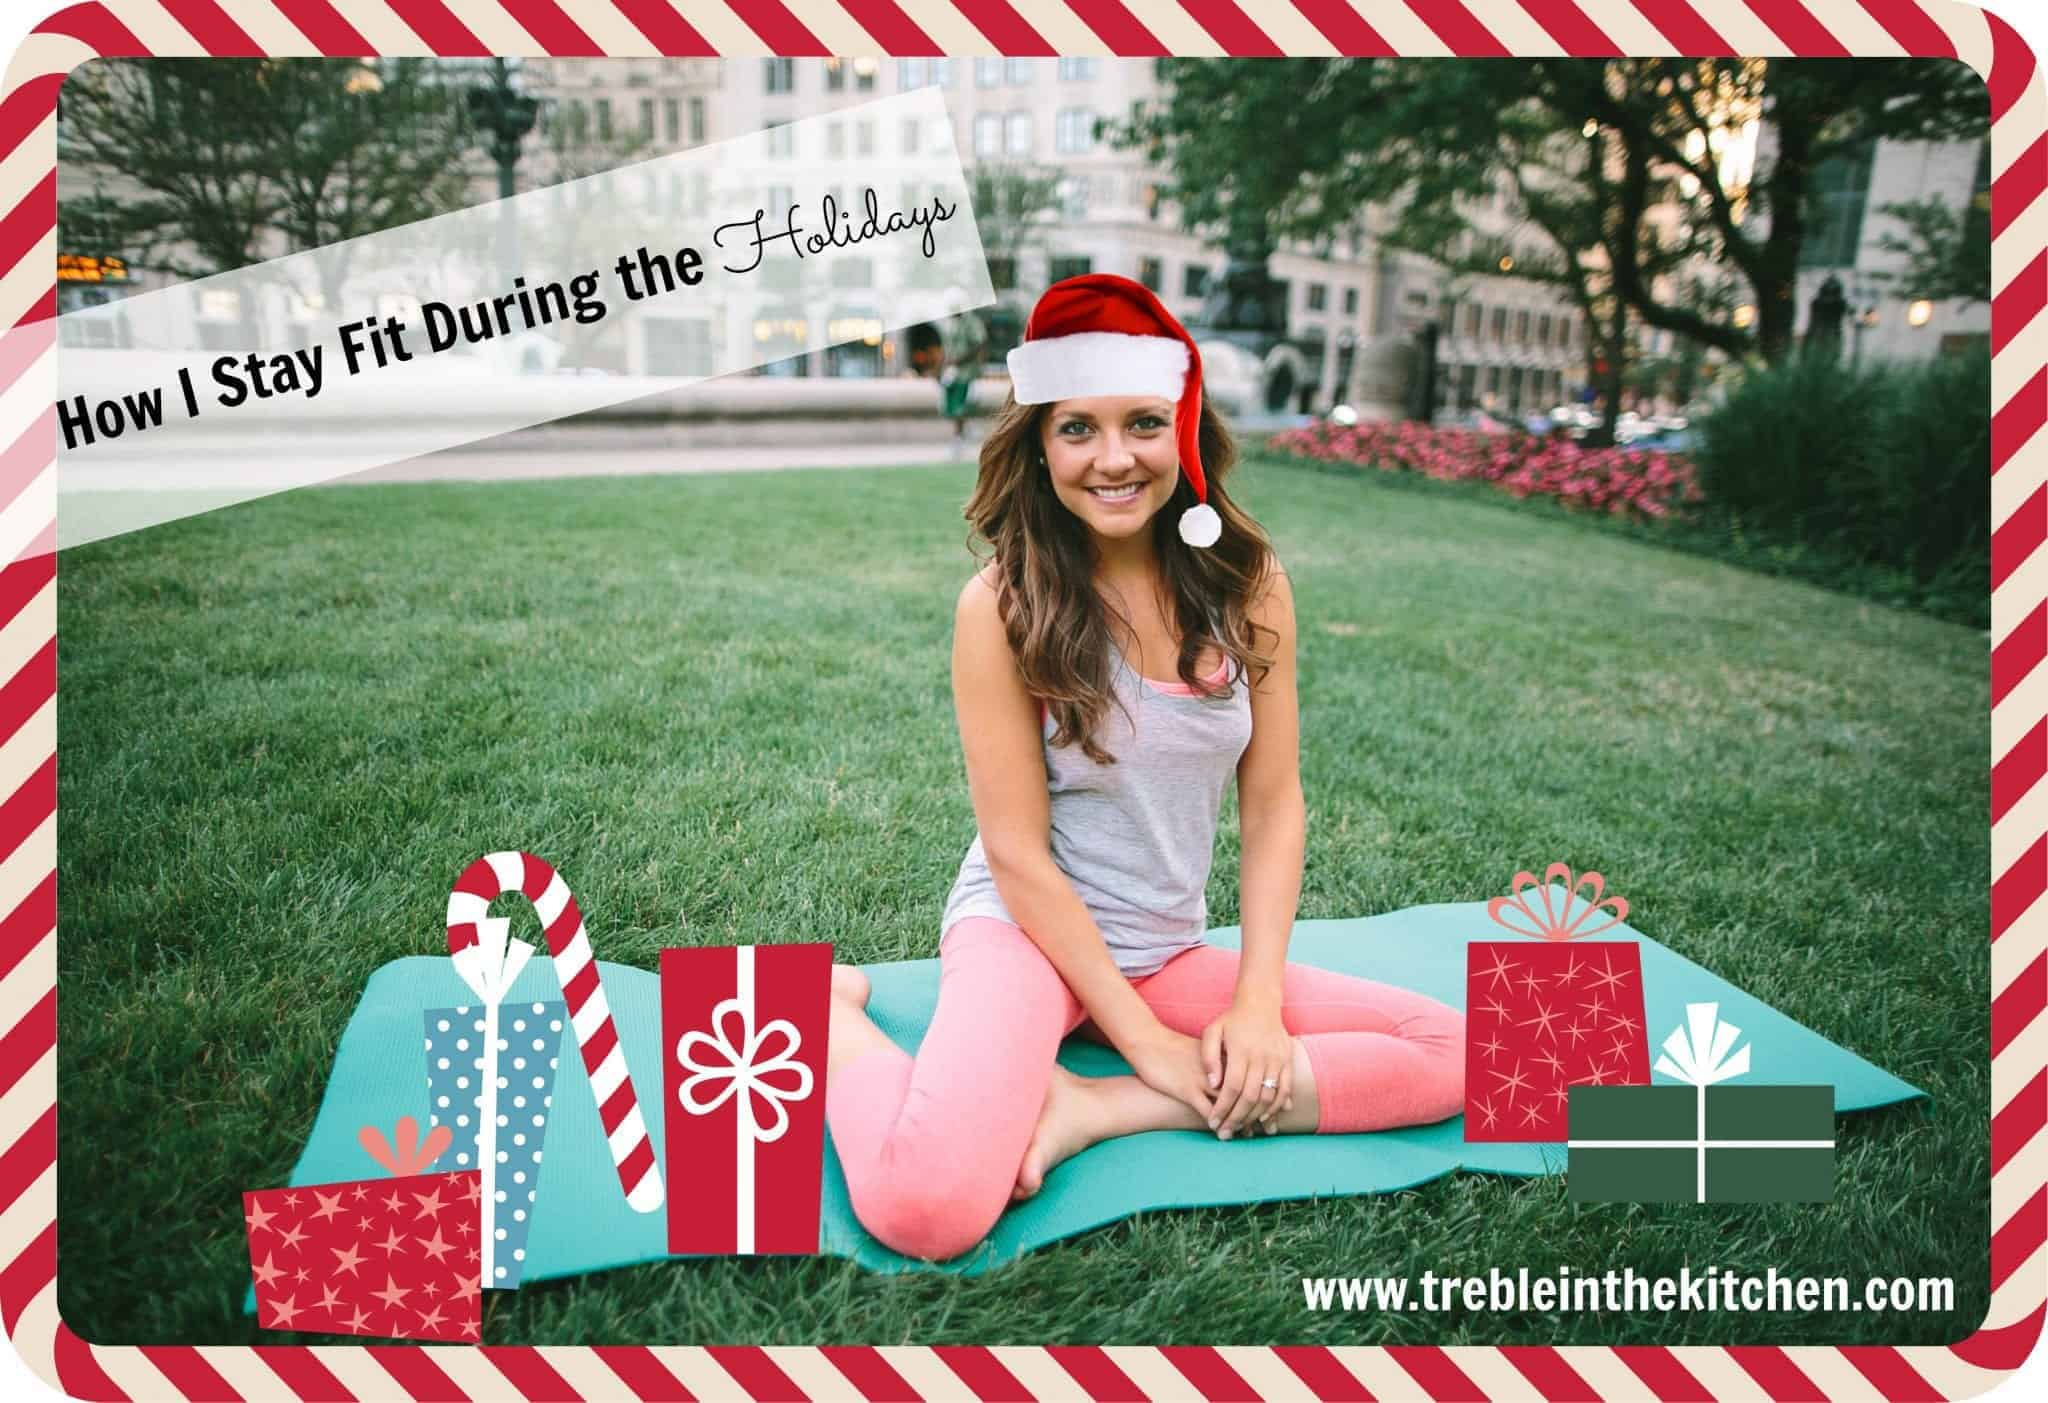 How I Stay Fit During the Holidays via Treble in the Kitchen